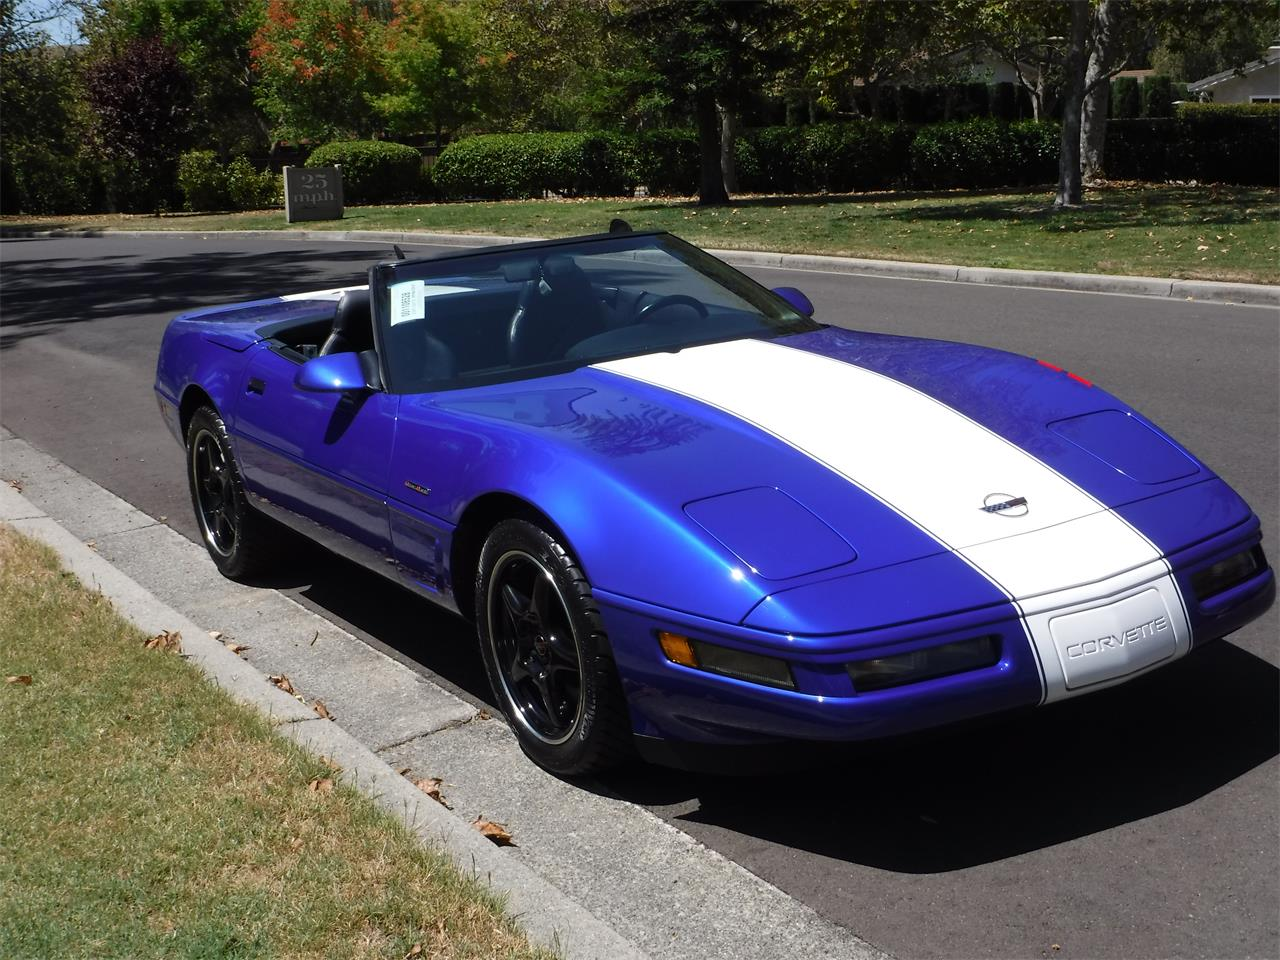 Large Picture of 1996 Corvette located in Danville California - $51,490.00 Offered by a Private Seller - GI3A